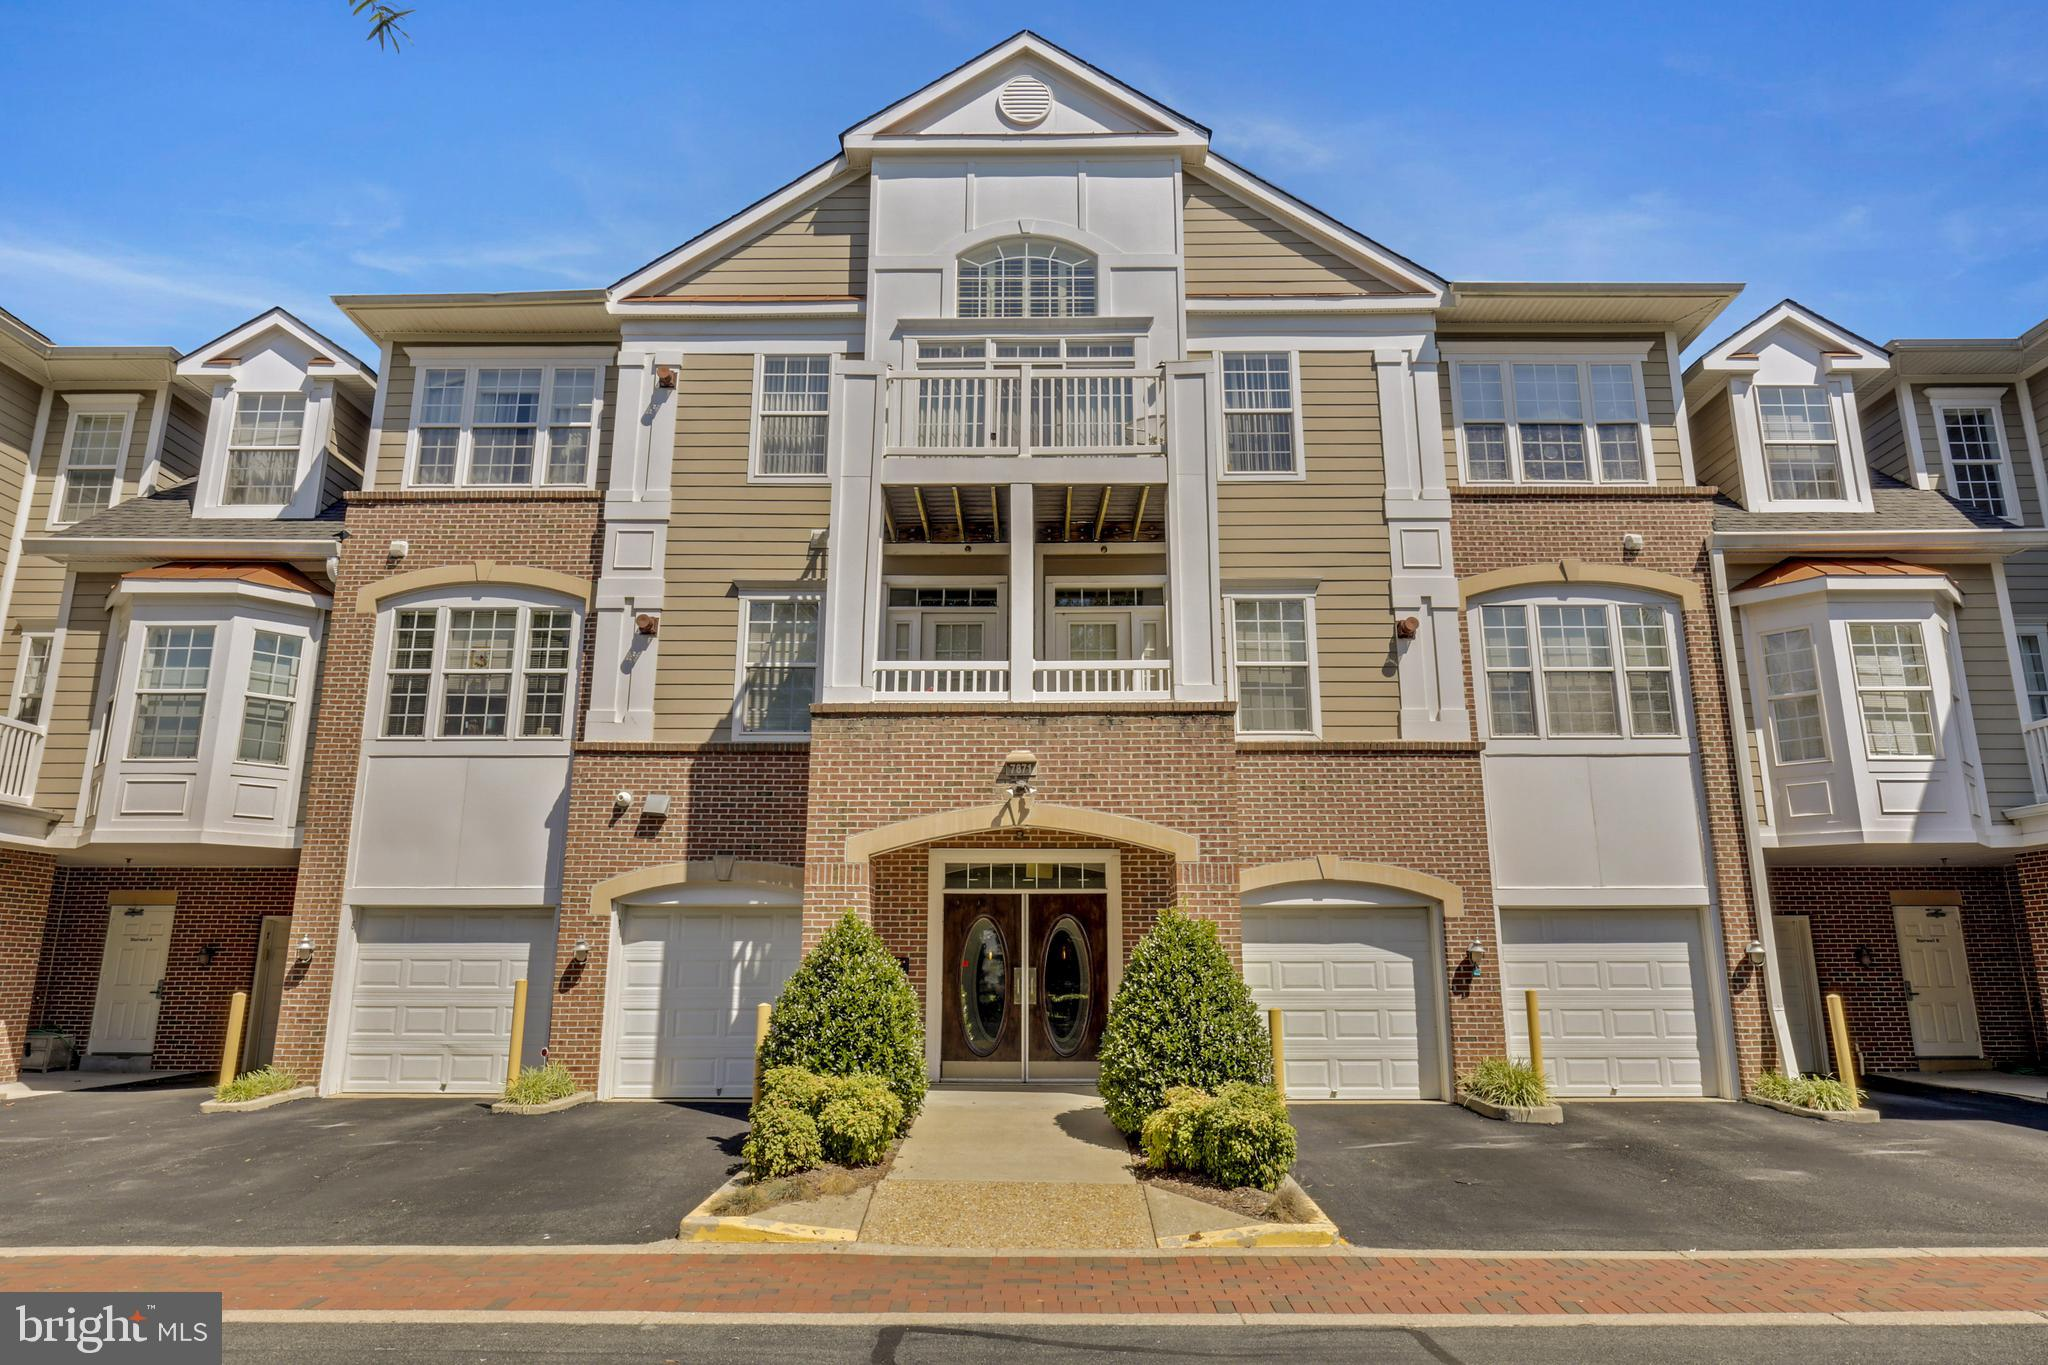 *MAJOR PRICE IMPROVEMENT!*  Bring your offers!  This gorgeous condo is located in the active 55+ community of Hiddenbrooke. This home features two beds, two baths, and a den, and boasts almost 1,700 square feet of elegant living space. From the gleaming hardwoods to the custom crown molding, this home is nothing short of opulent! The huge kitchen is a chef's dream and provides ample storage with an endless supply of cabinets in beautiful light maple. The sunroom just off the kitchen is the perfect place to enjoy your morning coffee while gazing at mature trees visible from every window. The over-sized den features custom floor-to-ceiling built-ins perfect for keeping life organized with ease. For the outgoing owner, there is no shortage of activities happening almost daily in the community center, and just outside the Bistro is an inviting patio complete with two grills, ample seating, and plenty of space to entertain or spend time with your neighbors. Enjoy the convenience of an attached garage that provides a private entrance to the building just steps away from your front door!  Be sure to see this unique condominium home today!